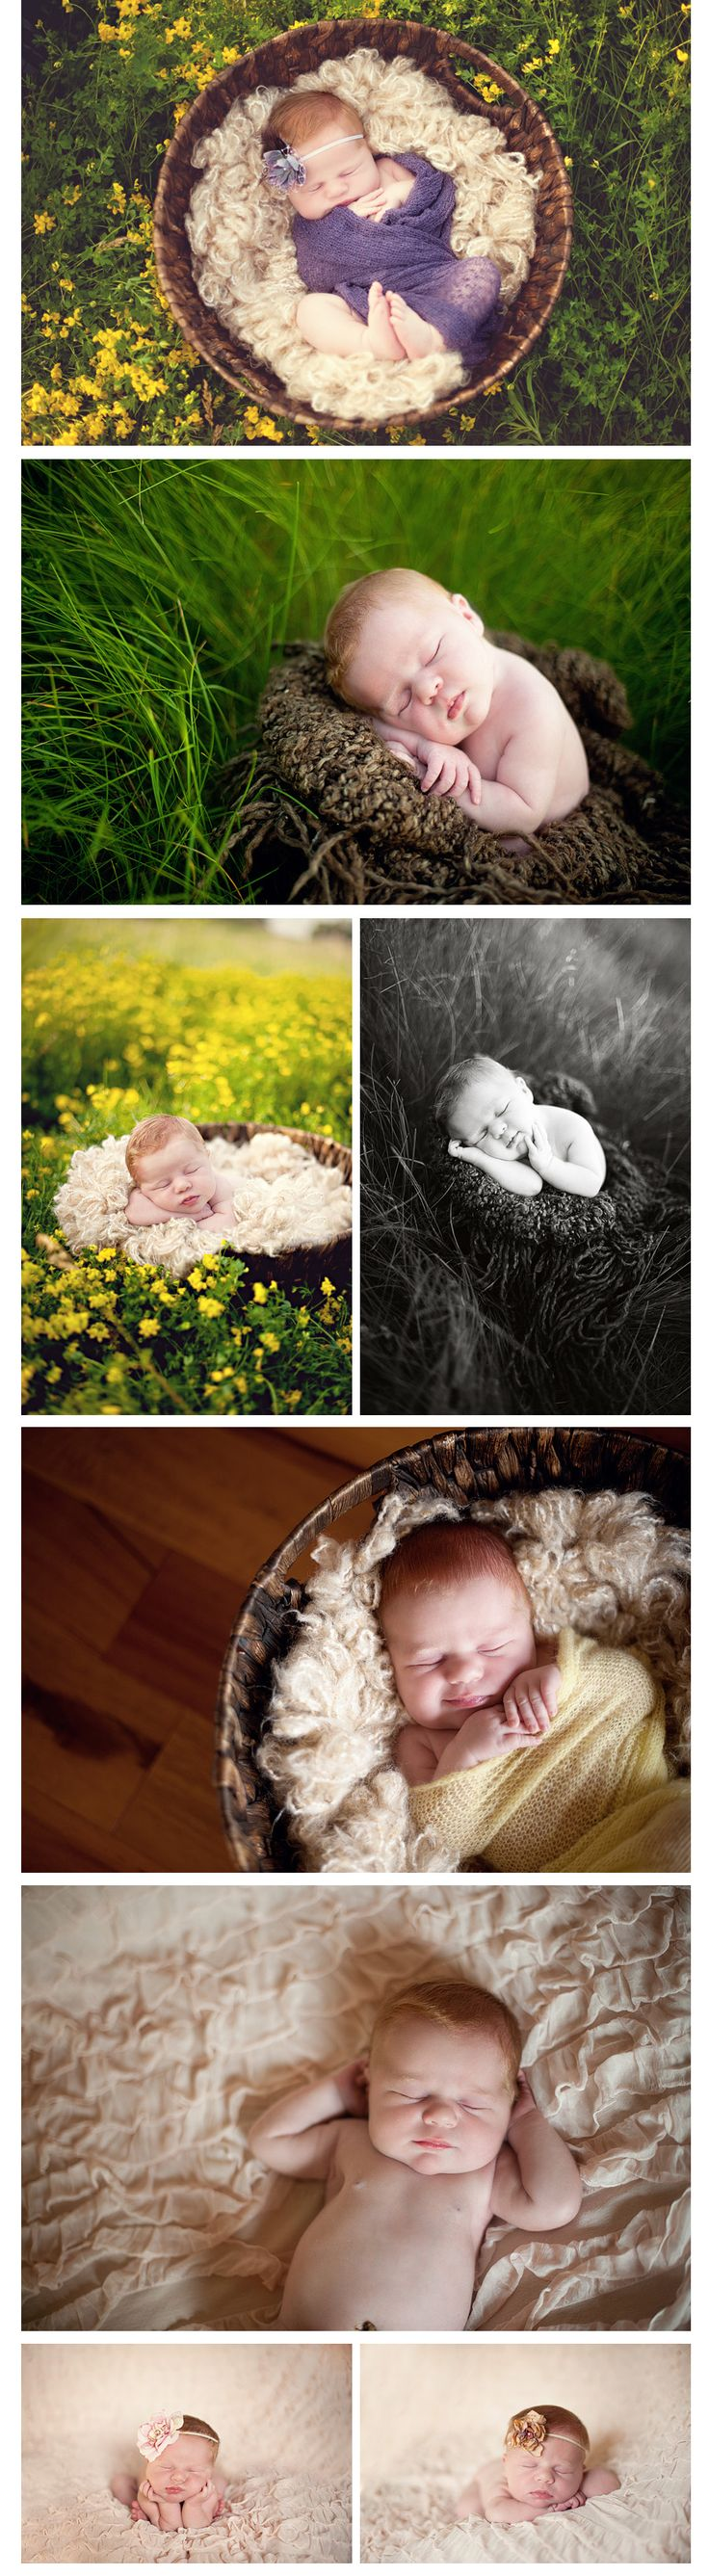 Beautiful Baby pictures...definitely not now but someday I hope to have a beautiful baby like this